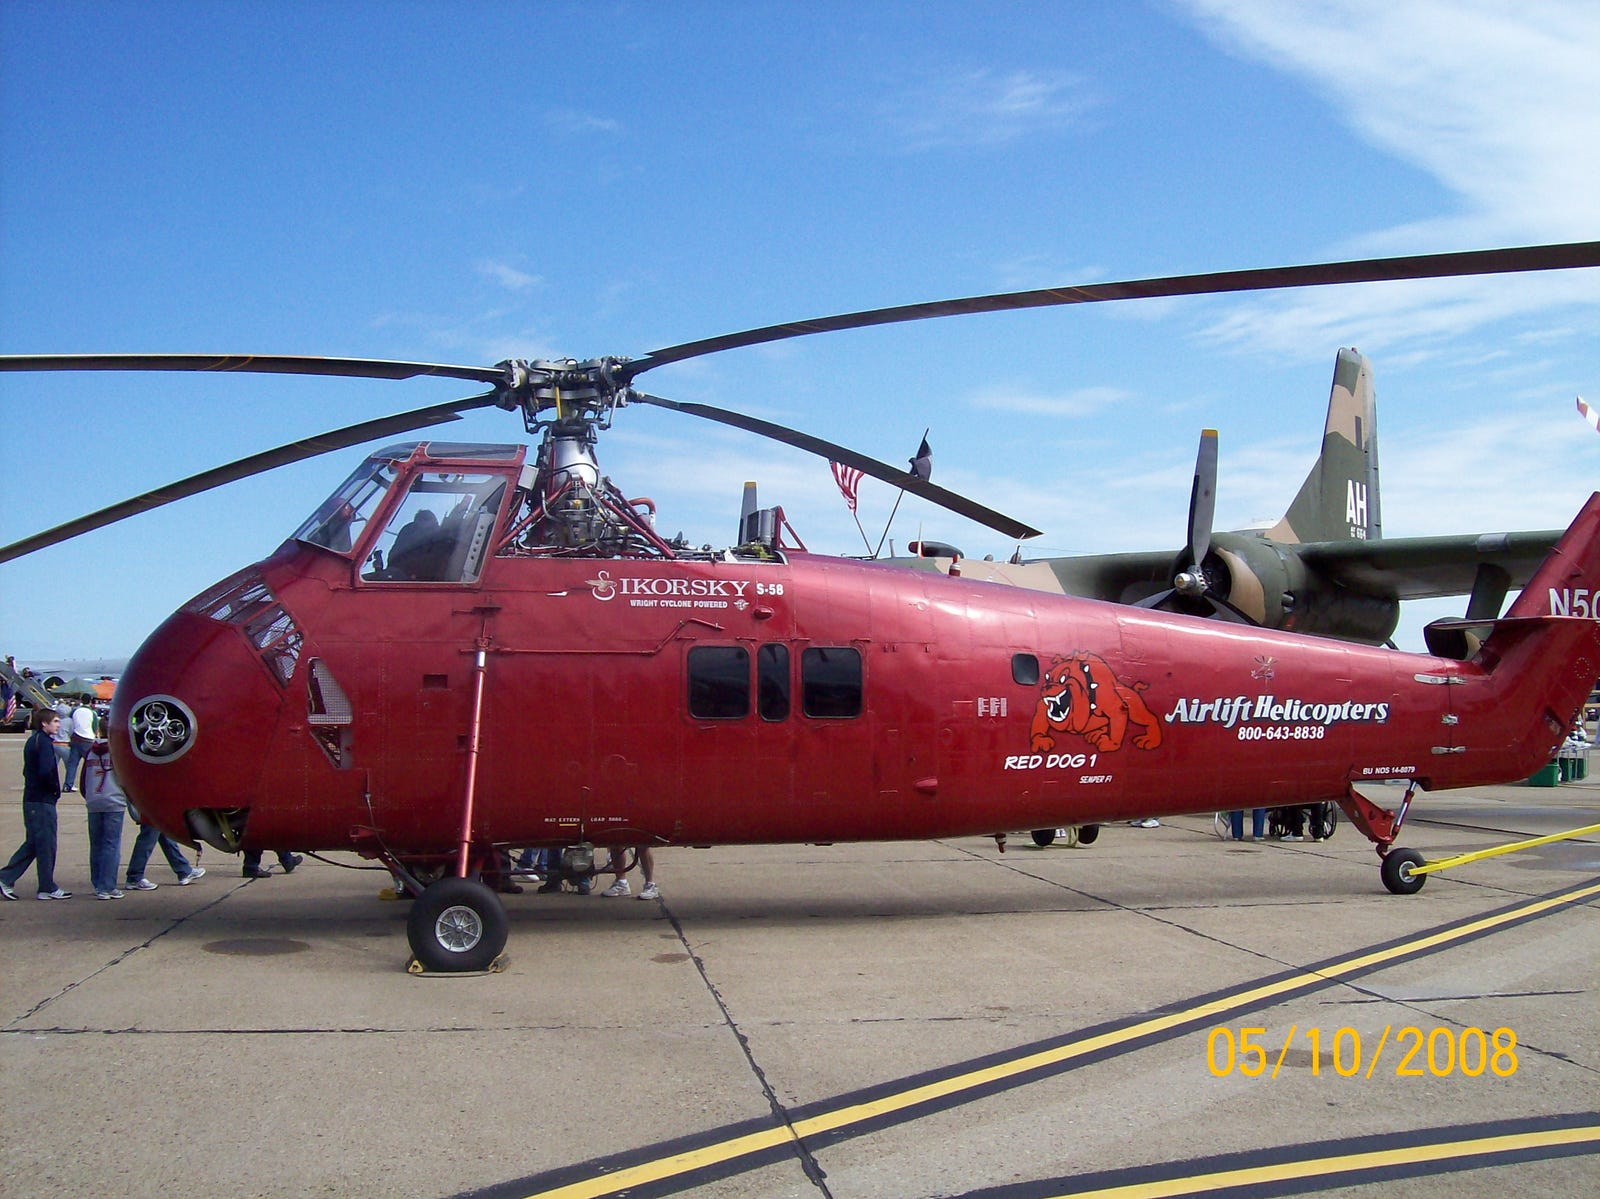 Built as a HUS-1 in 1958, Red Dog 1 was redesignated as an UH-34D Seahorse in 1962, served in Vietnam, then was retired in 1970.